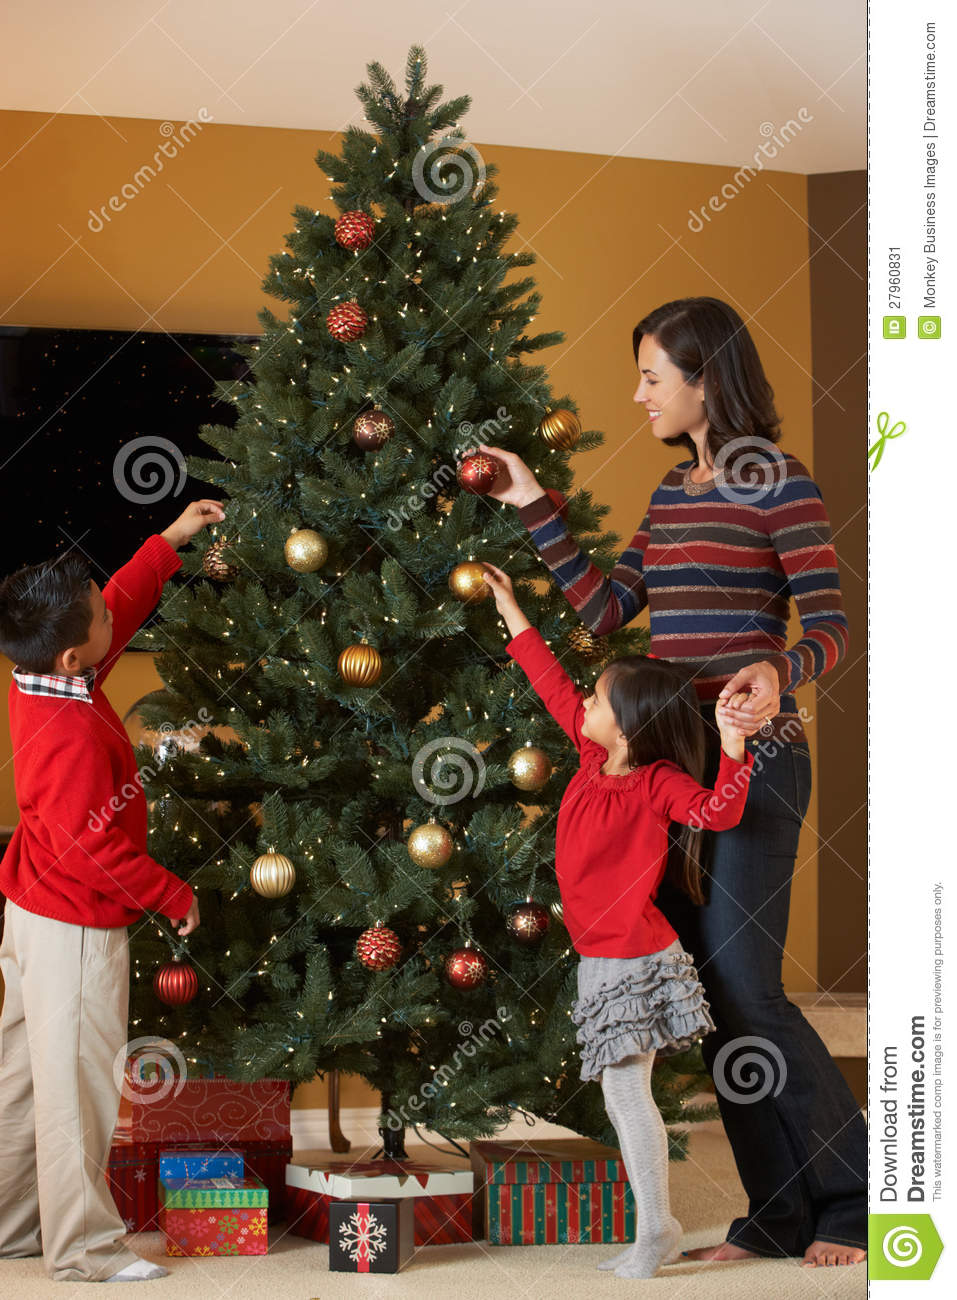 Mother And Children Decorating Christmas Tree Stock Image - Image ...